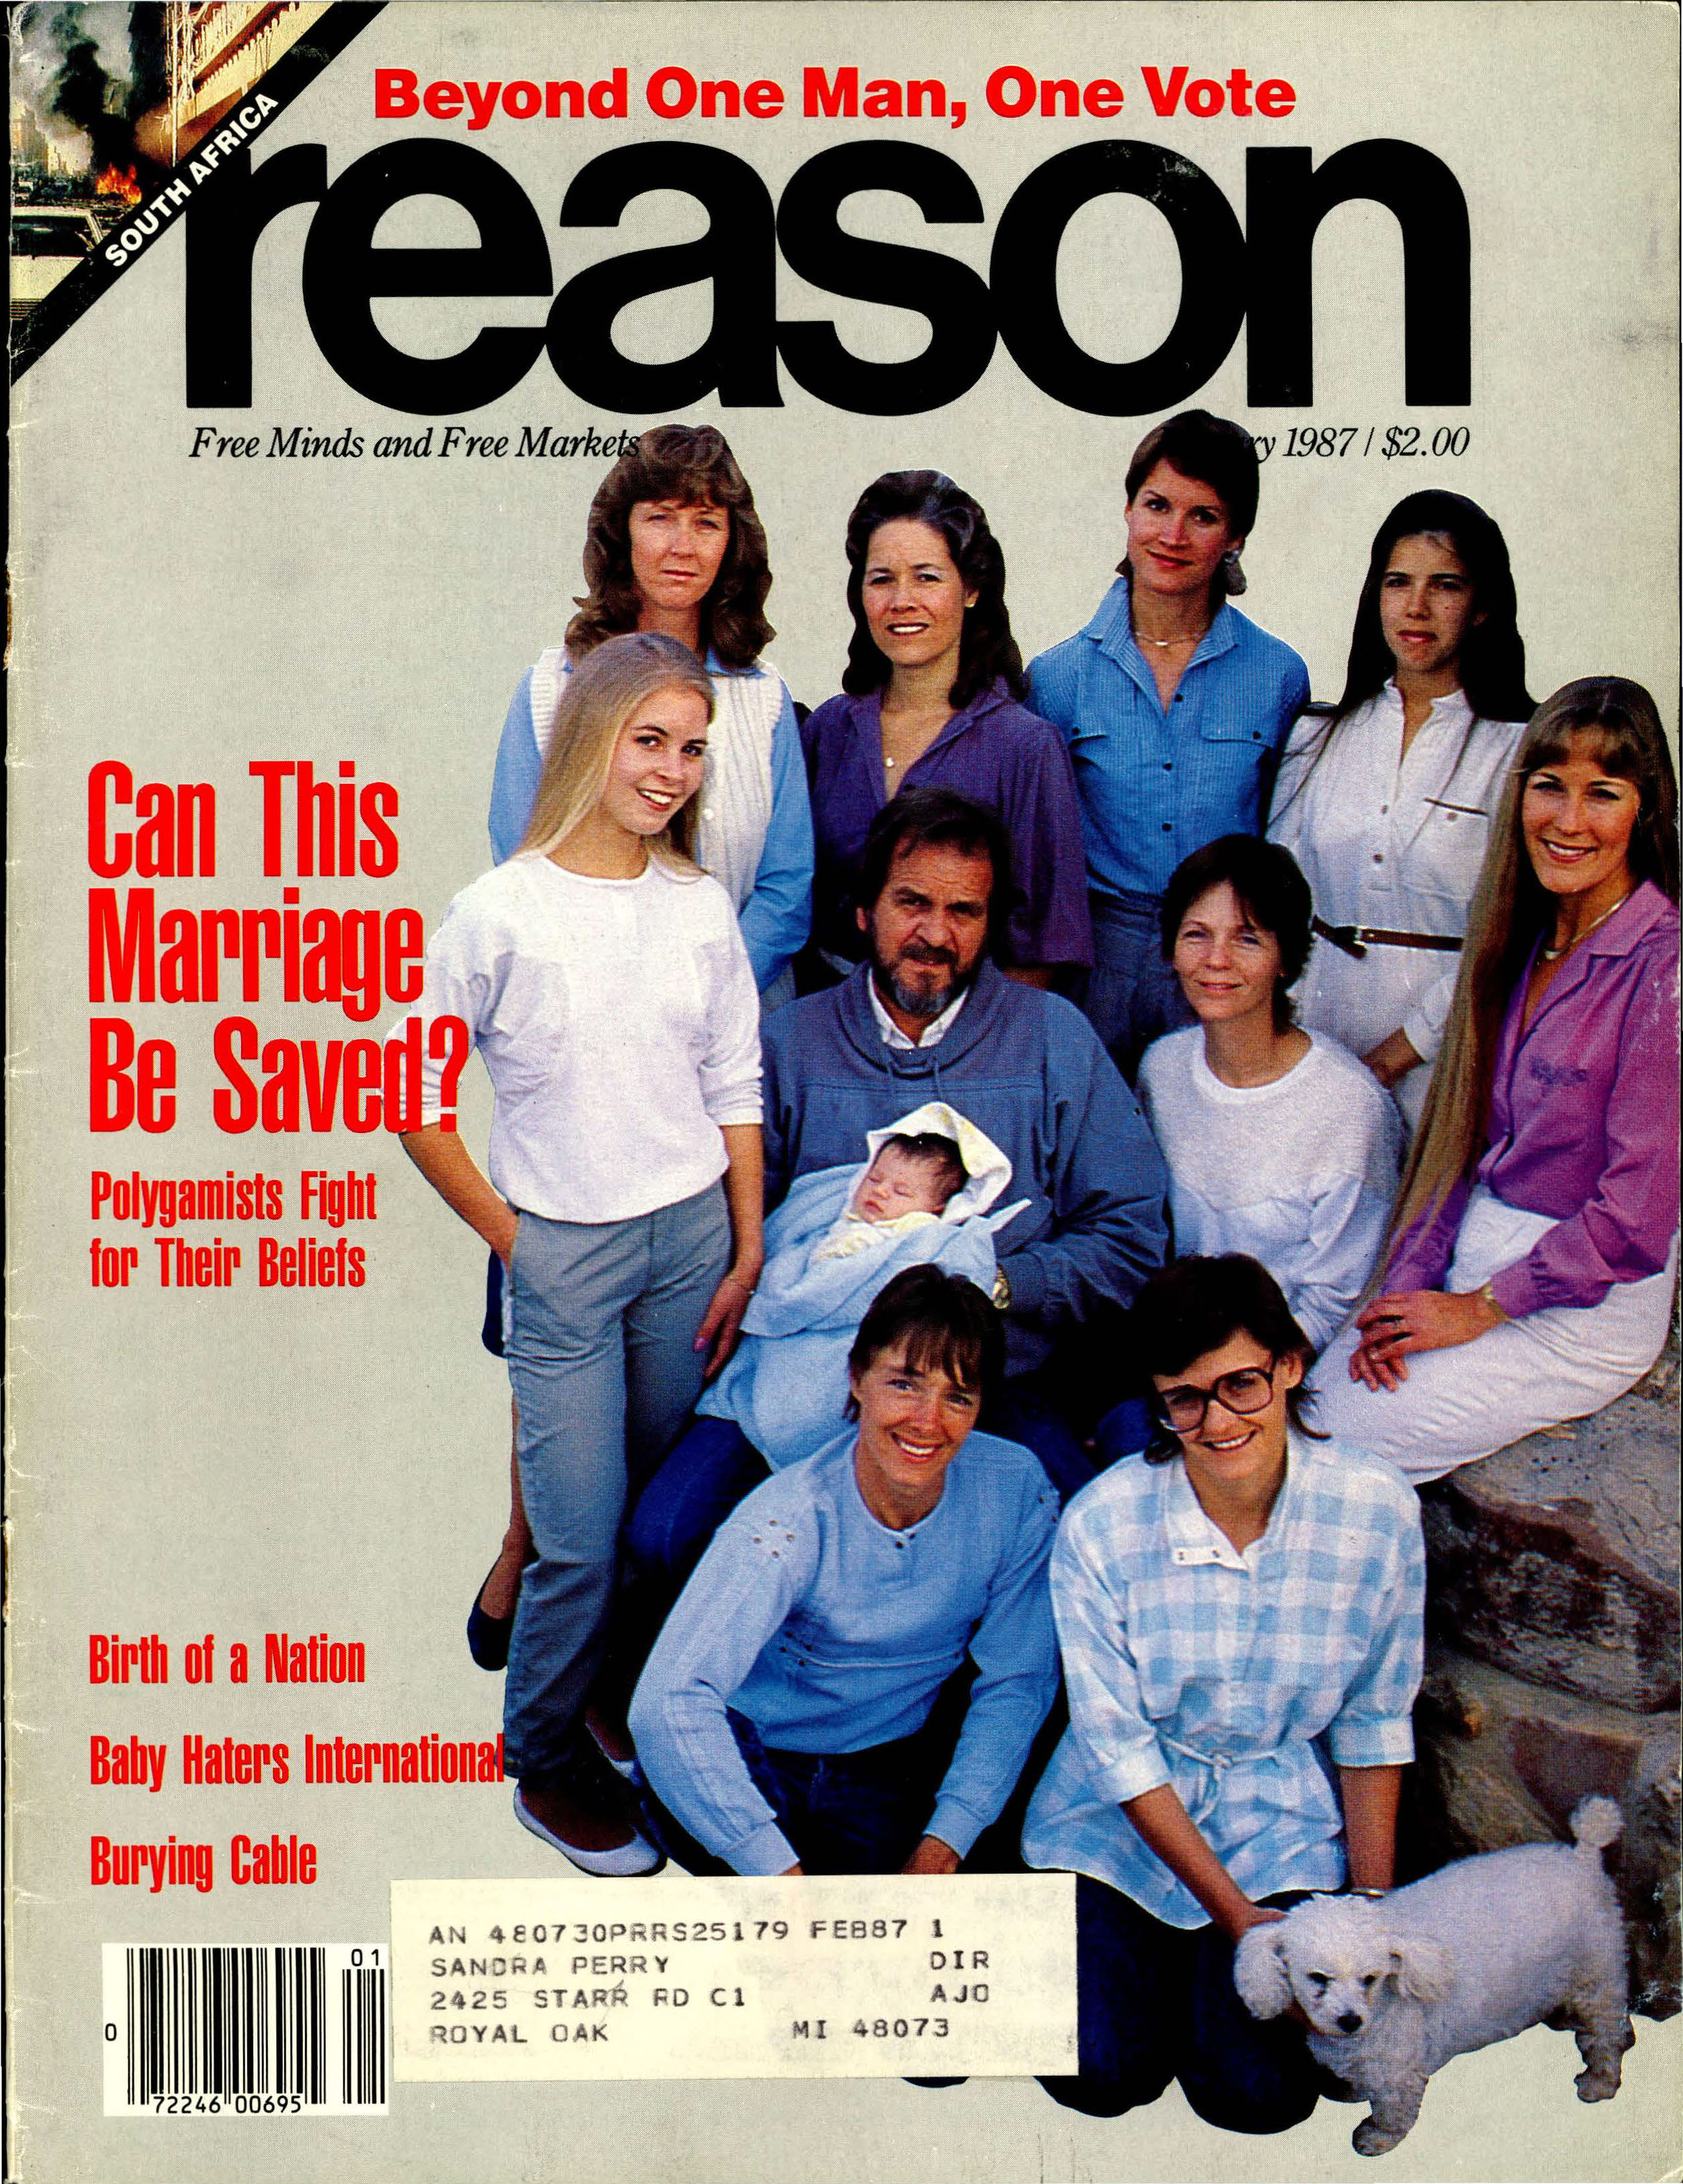 Reason Magazine, January 1987 cover image